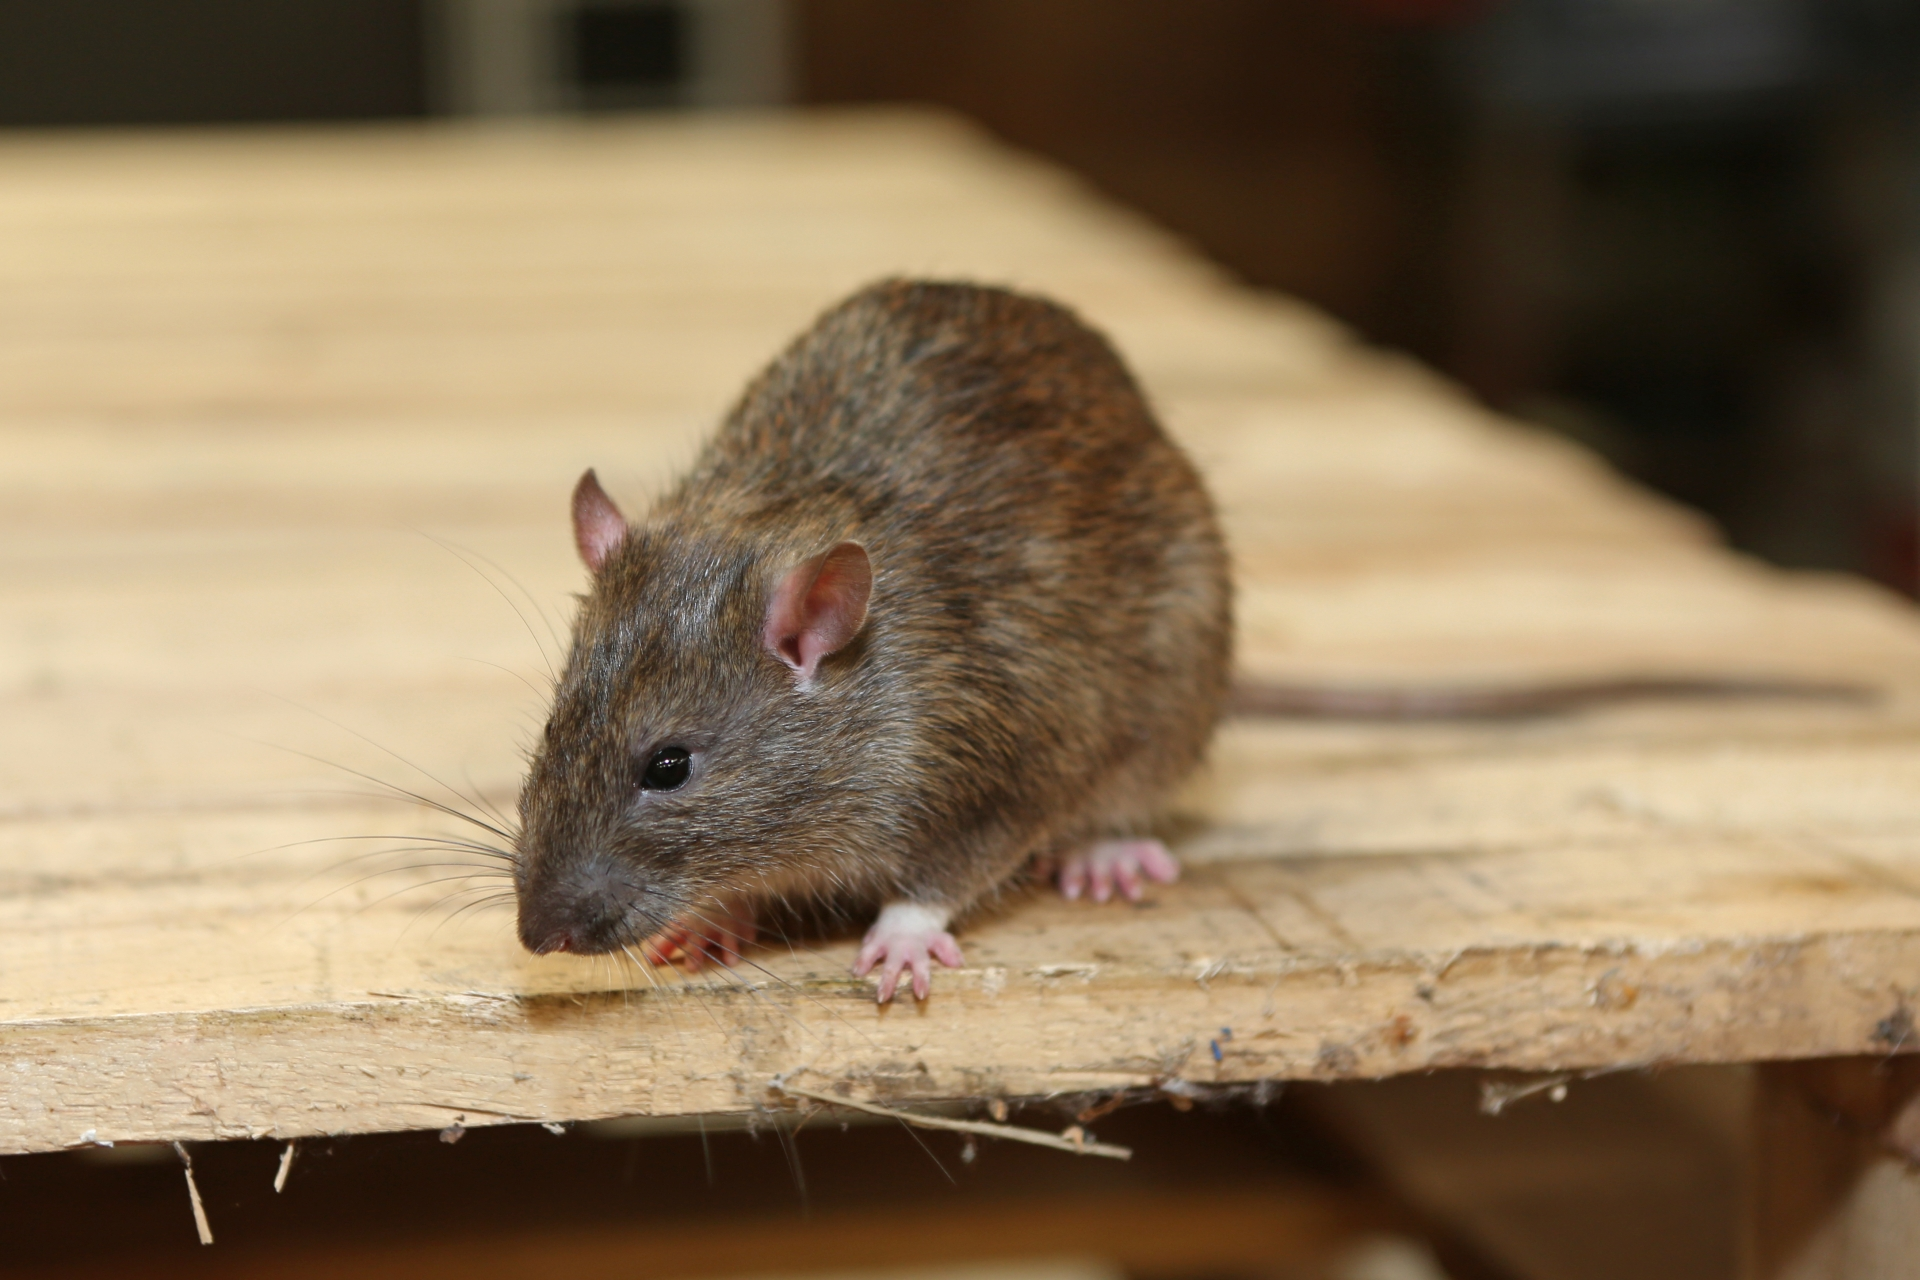 Rat Control, Pest Control in Tufnell Park, N19. Call Now 020 8166 9746